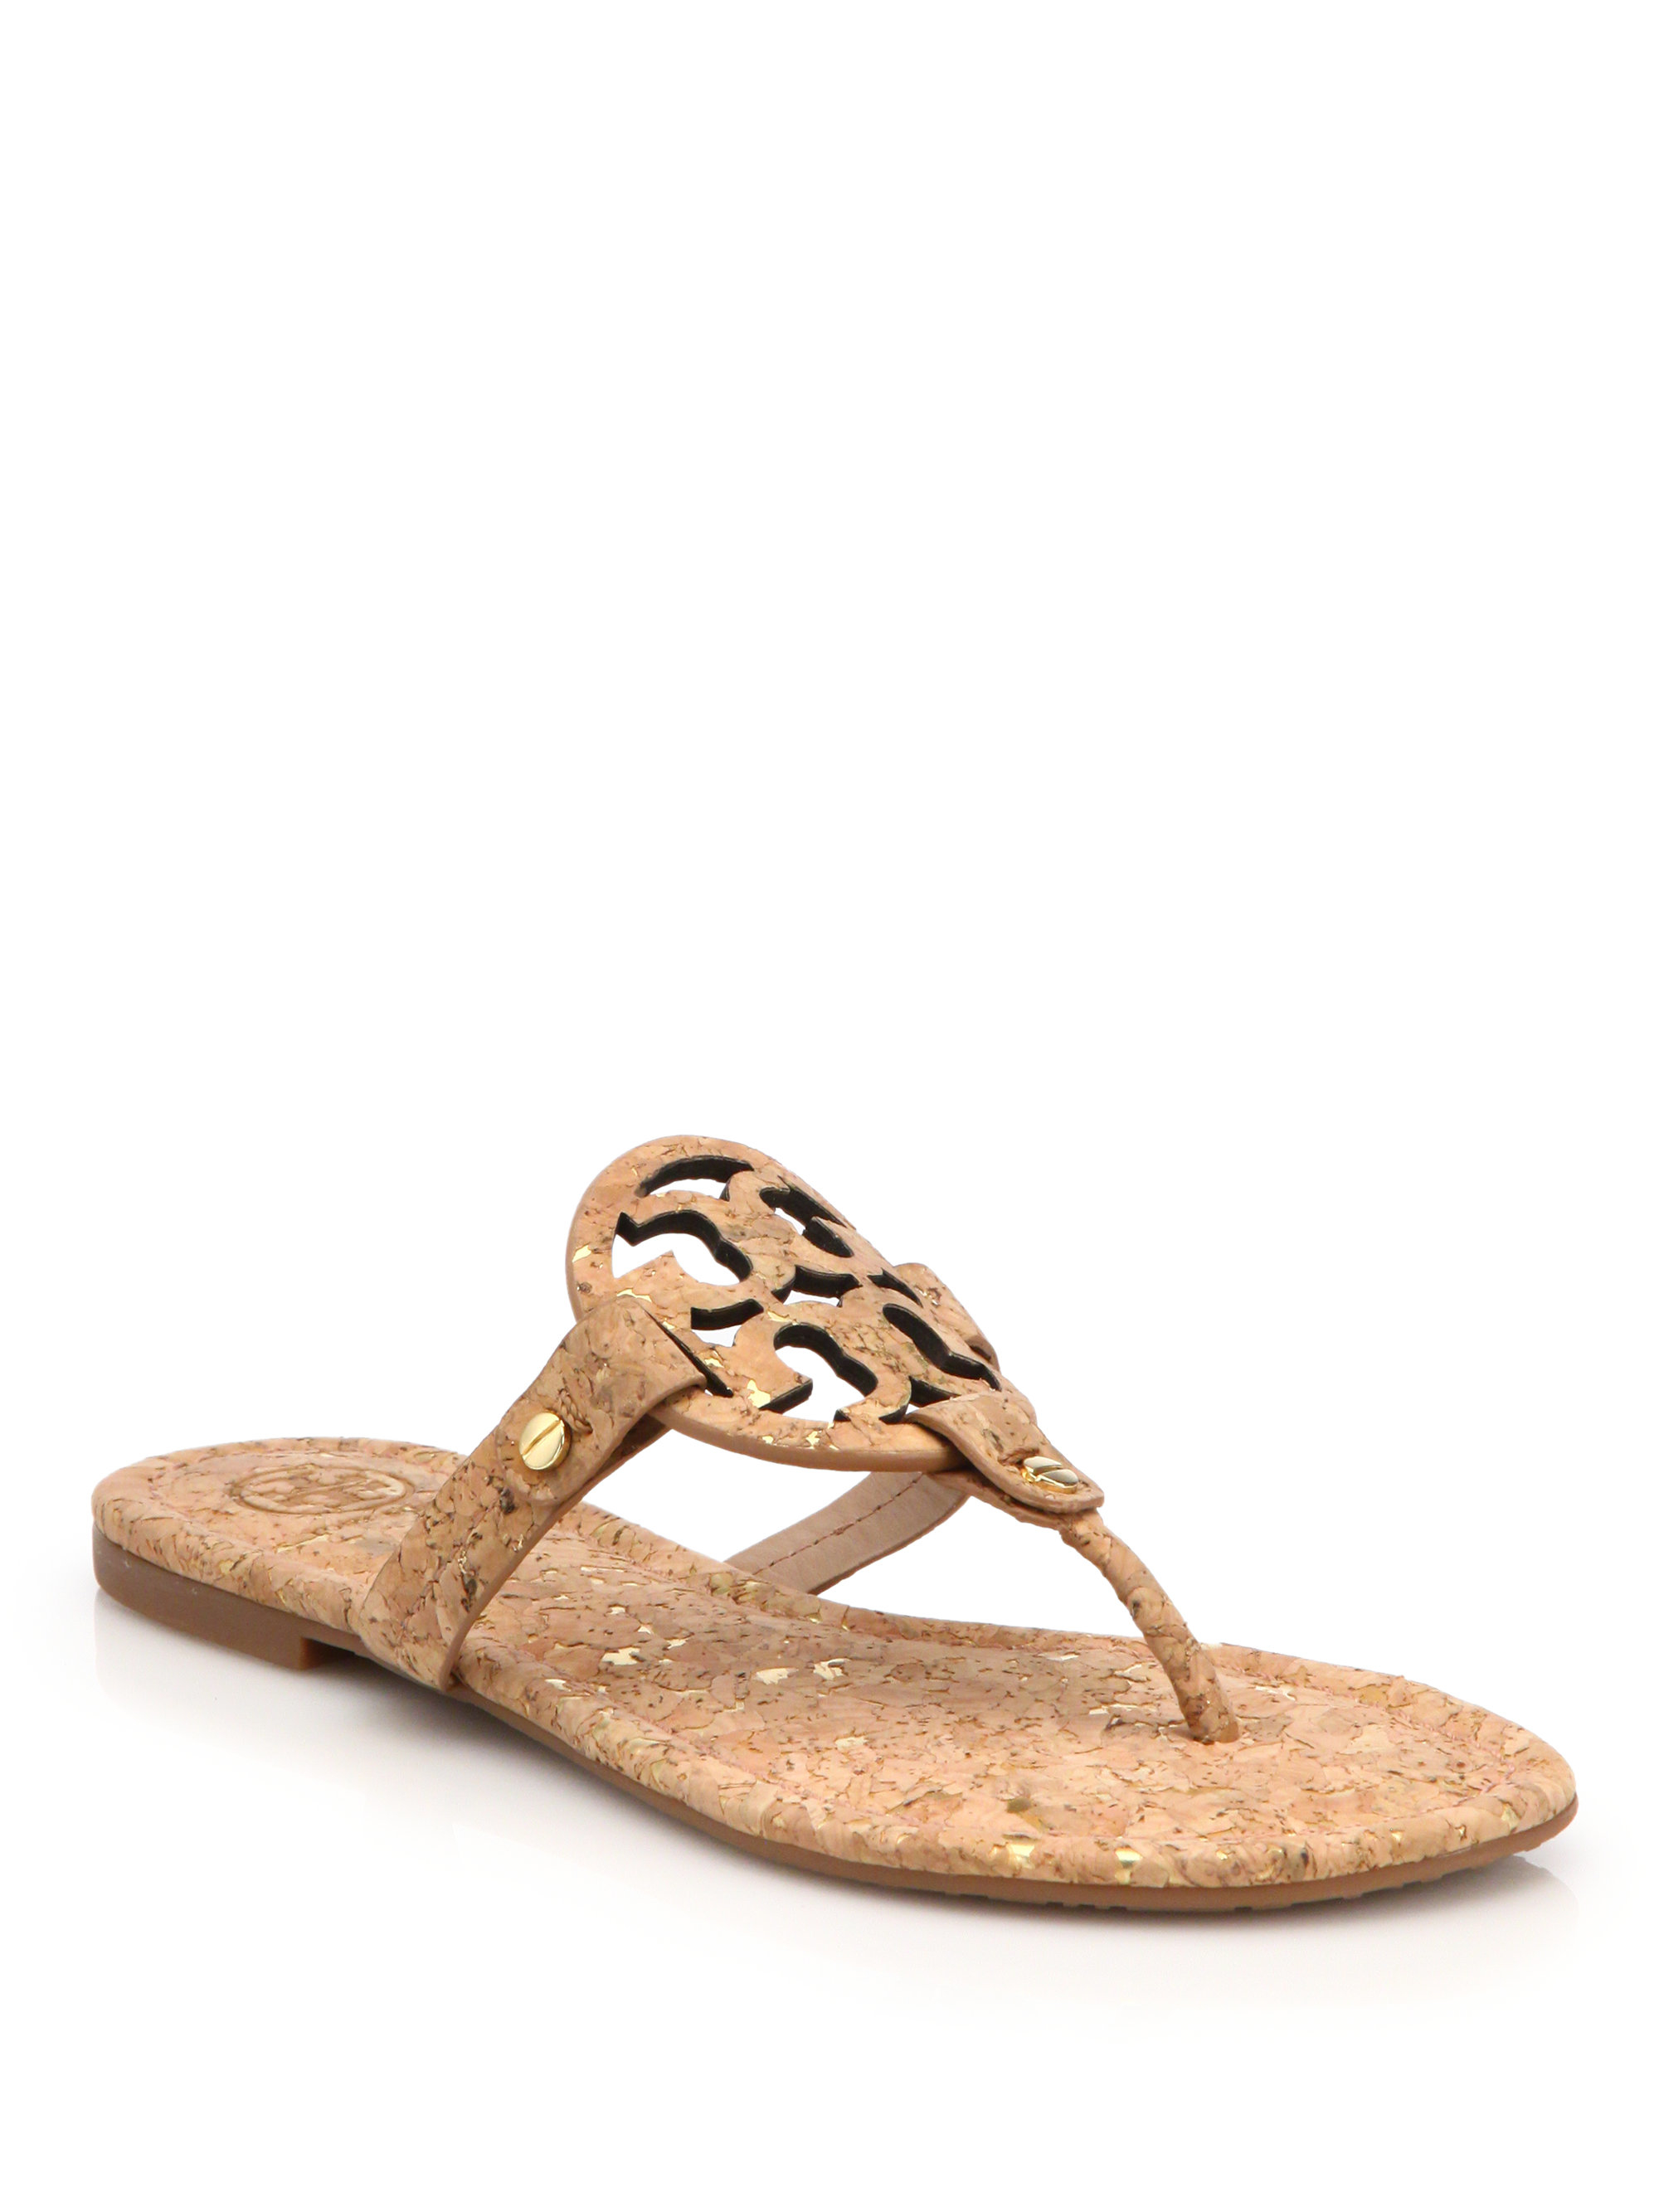 61db06aefda Lyst - Tory Burch Miller Cork Logo Thong Sandals in Natural